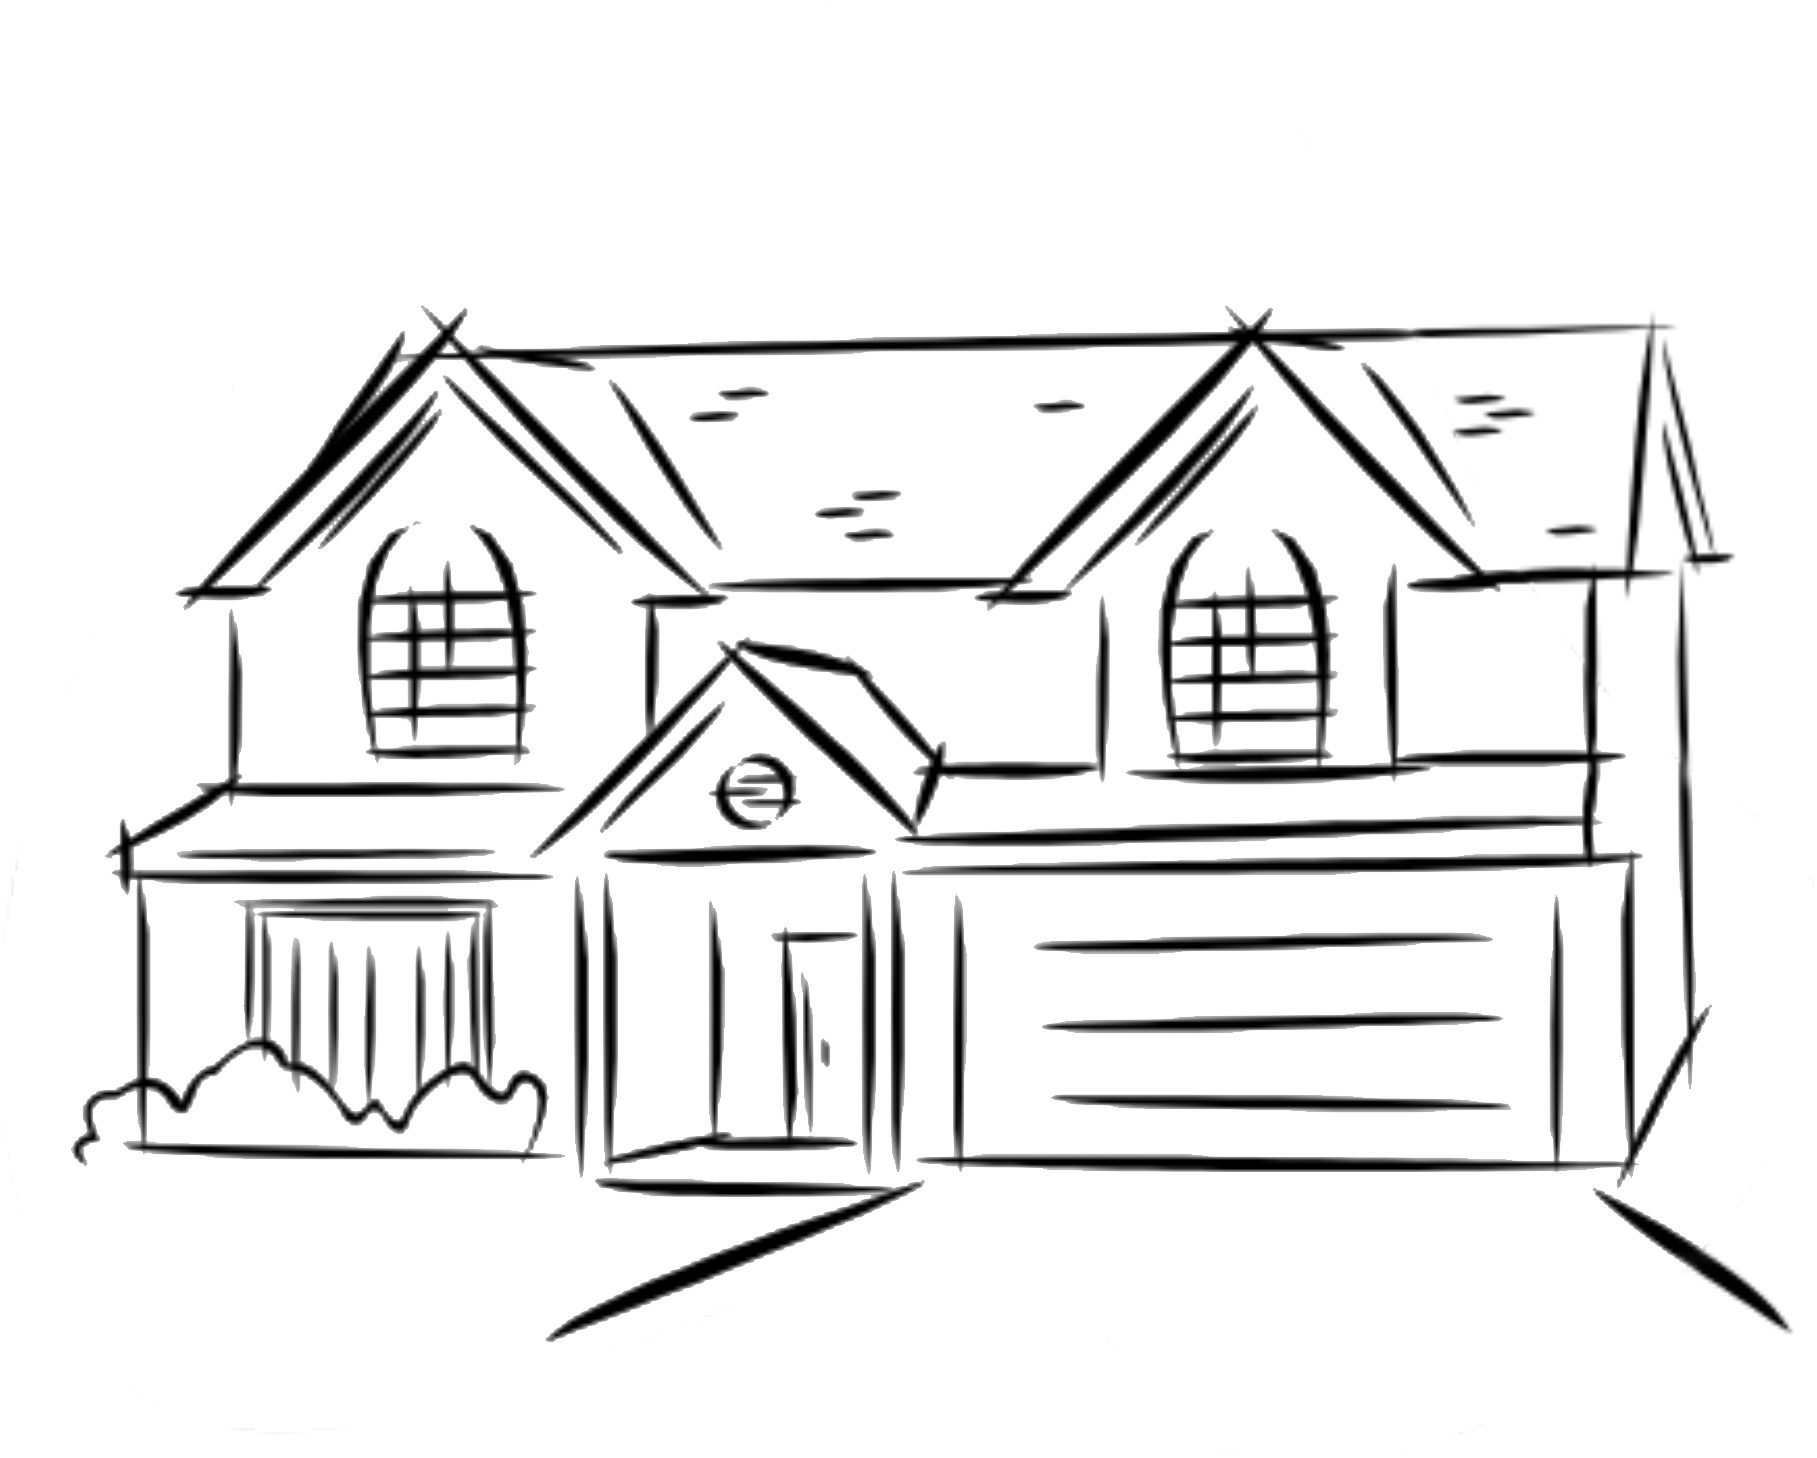 Black and white house clipart image transparent download Two Story House Drawing at GetDrawings.com | Free for personal use ... image transparent download